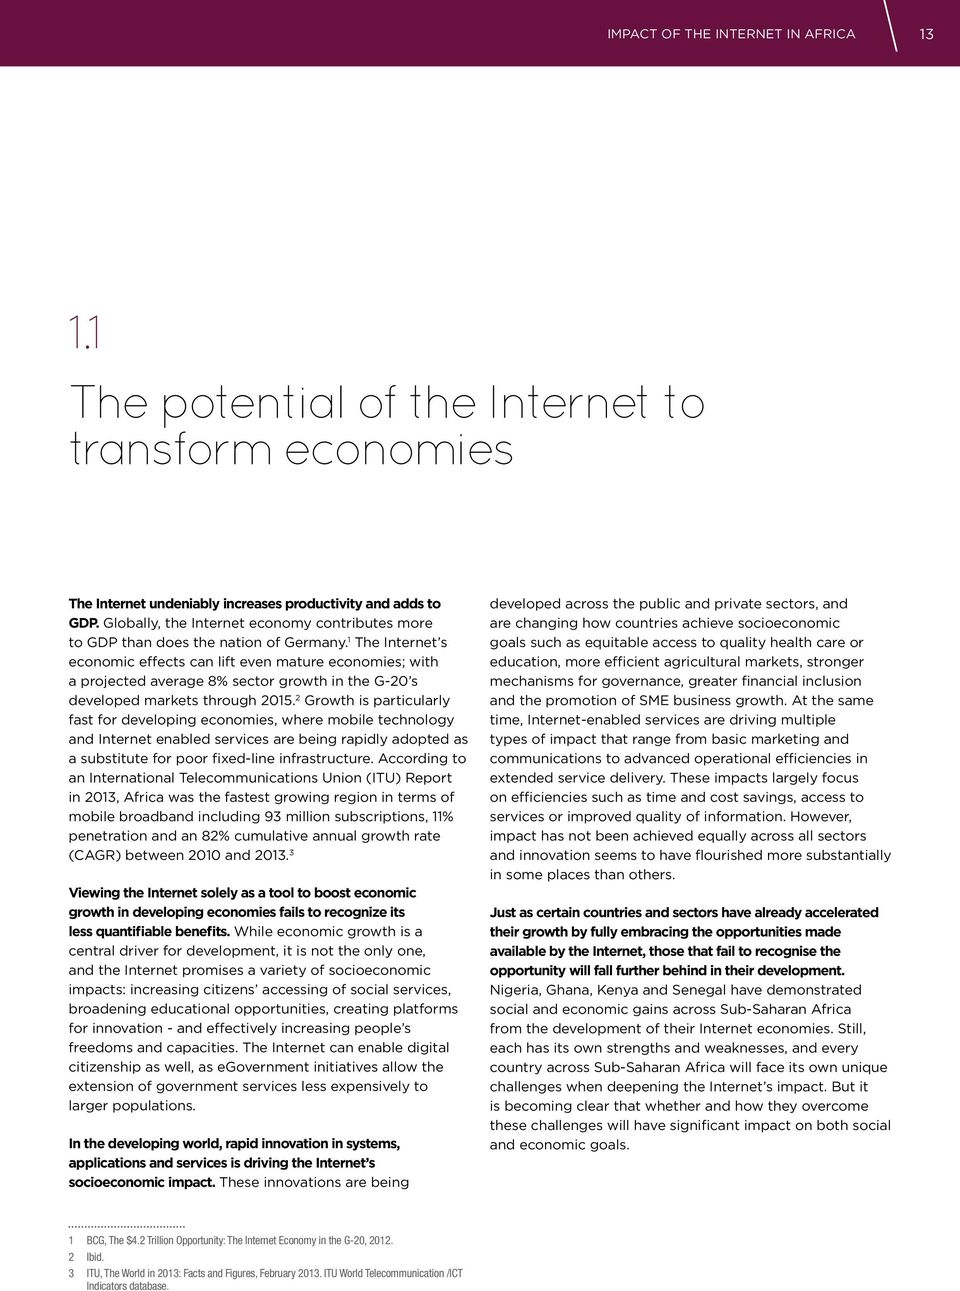 1 The Internet s economic eects can lift even mature economies; with a projected average 8% sector growth in the G-20 s developed markets through 2015.